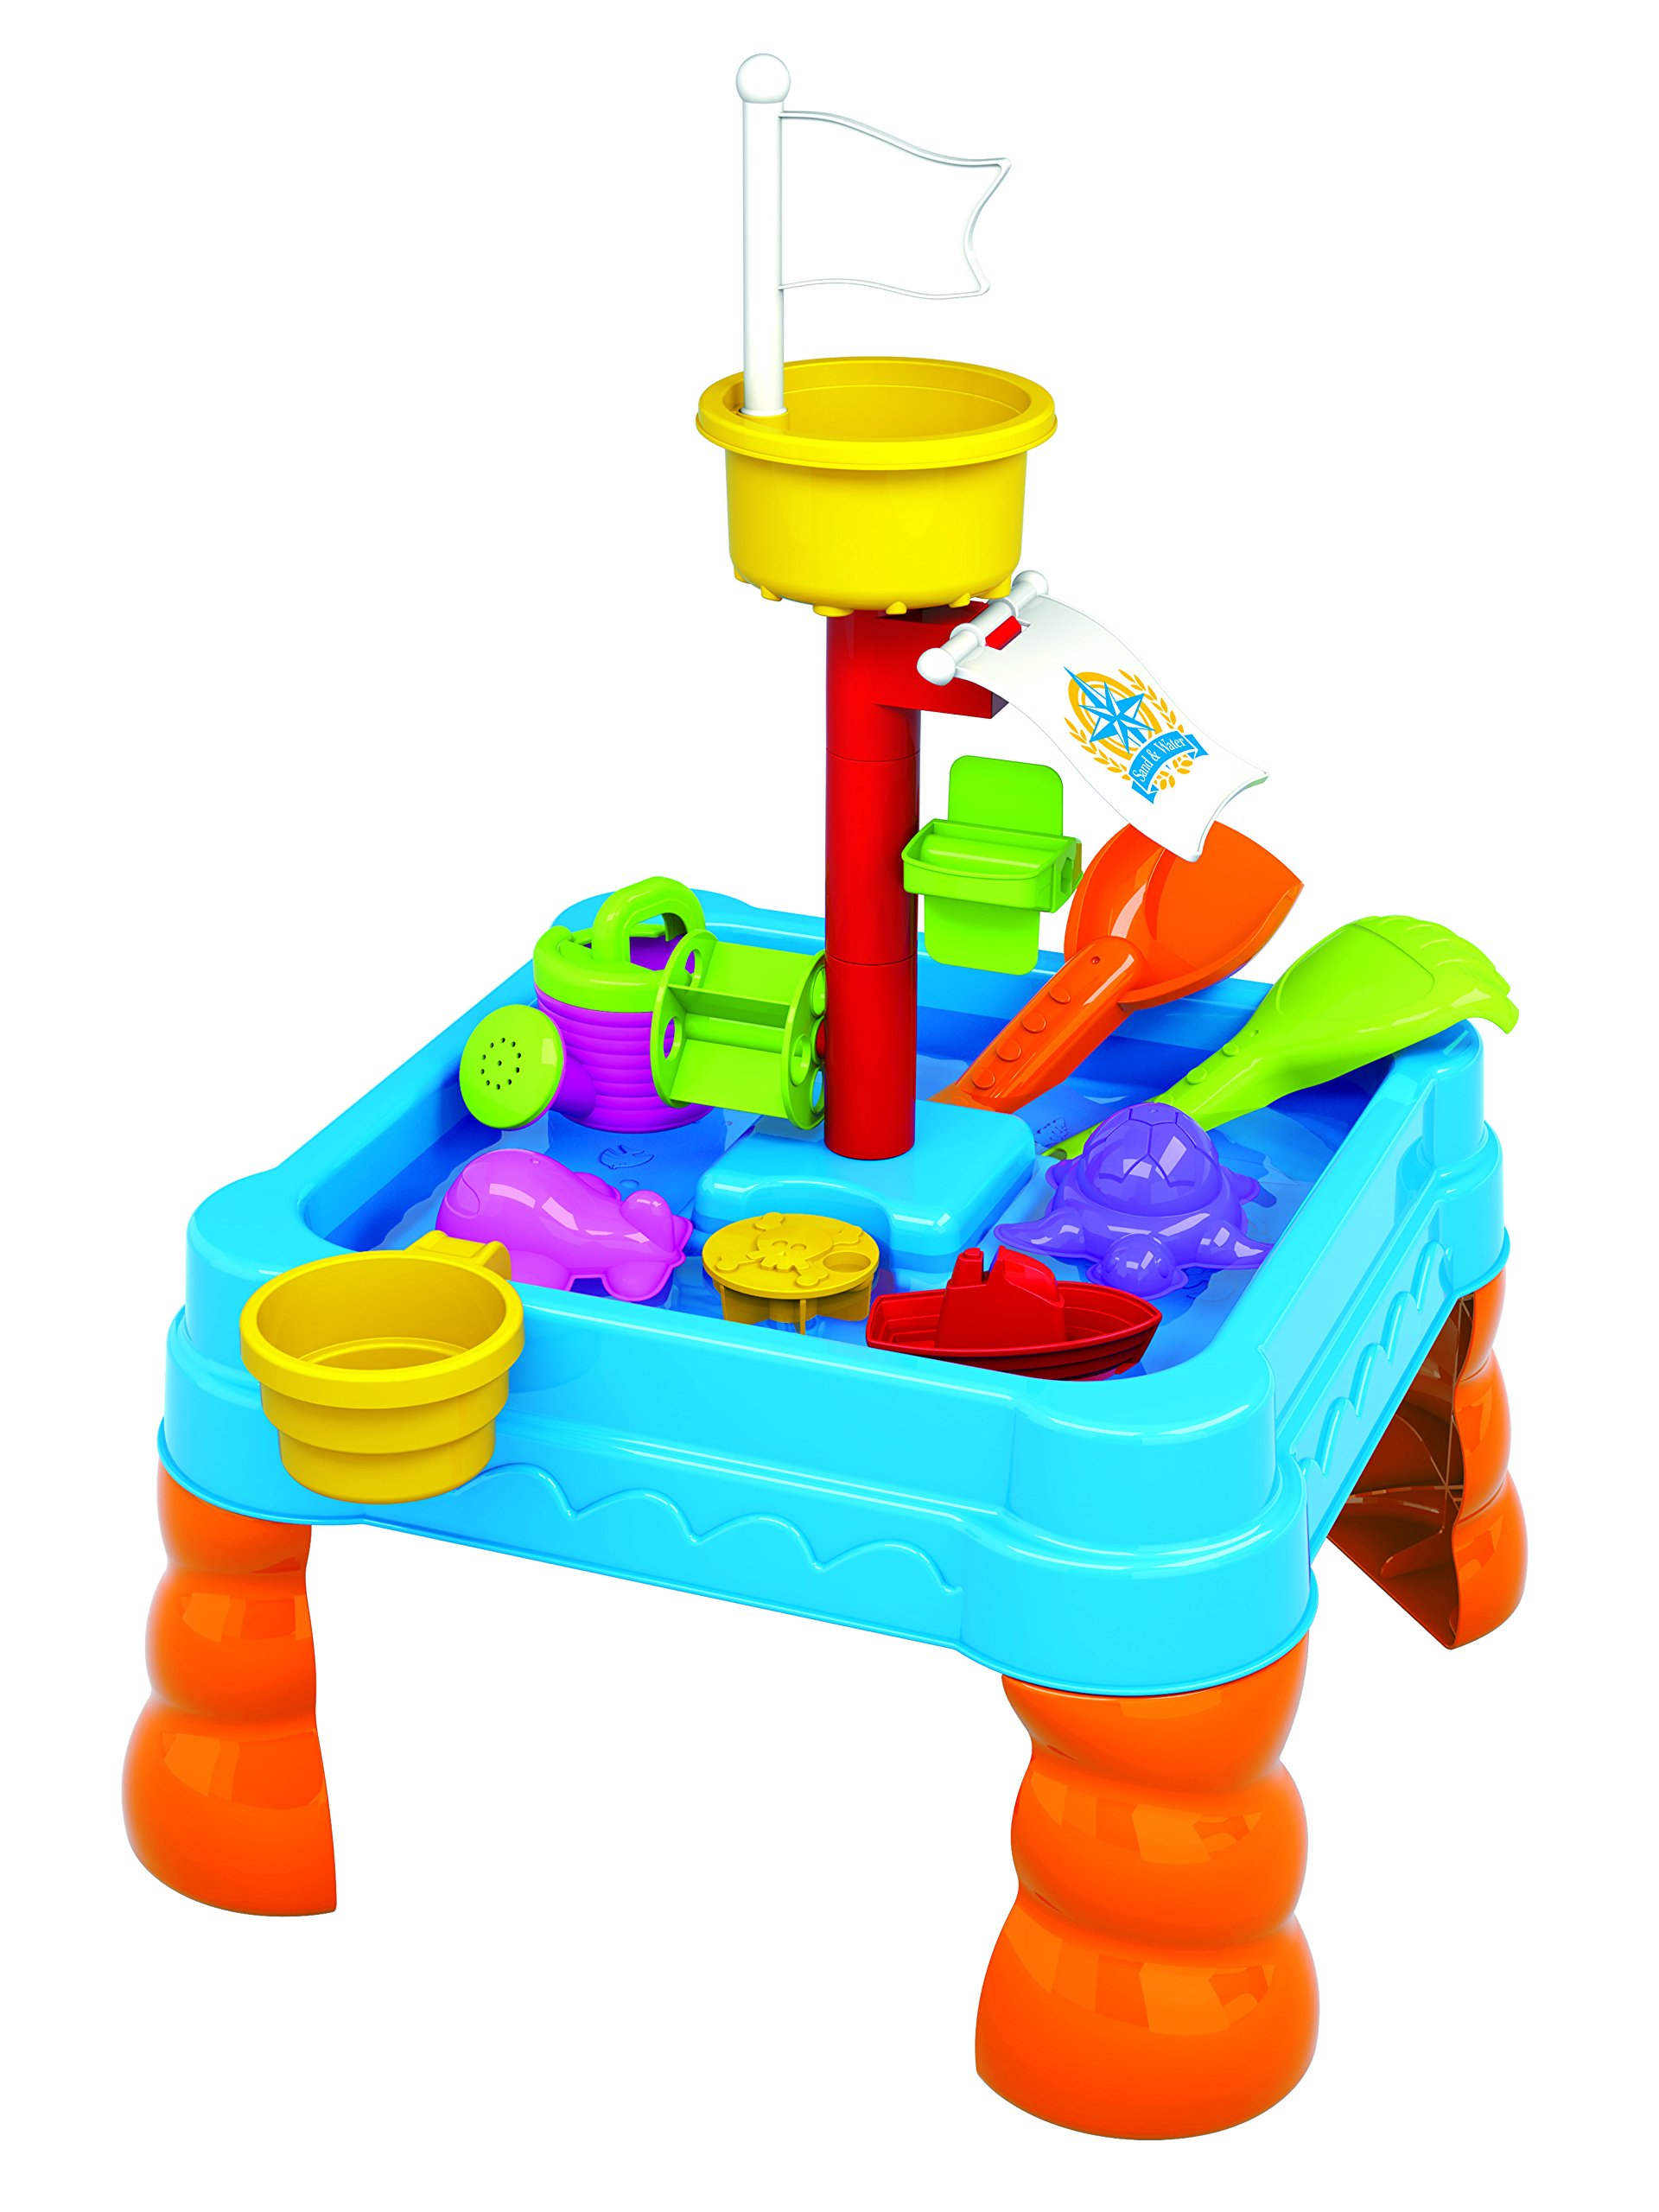 Kids Sand and Water Table - Toddler Bubble Splash Water Table - Splash and Scoop Kids Table - Detachable Legs - Beach Tools and Water Cans by Lenoxx